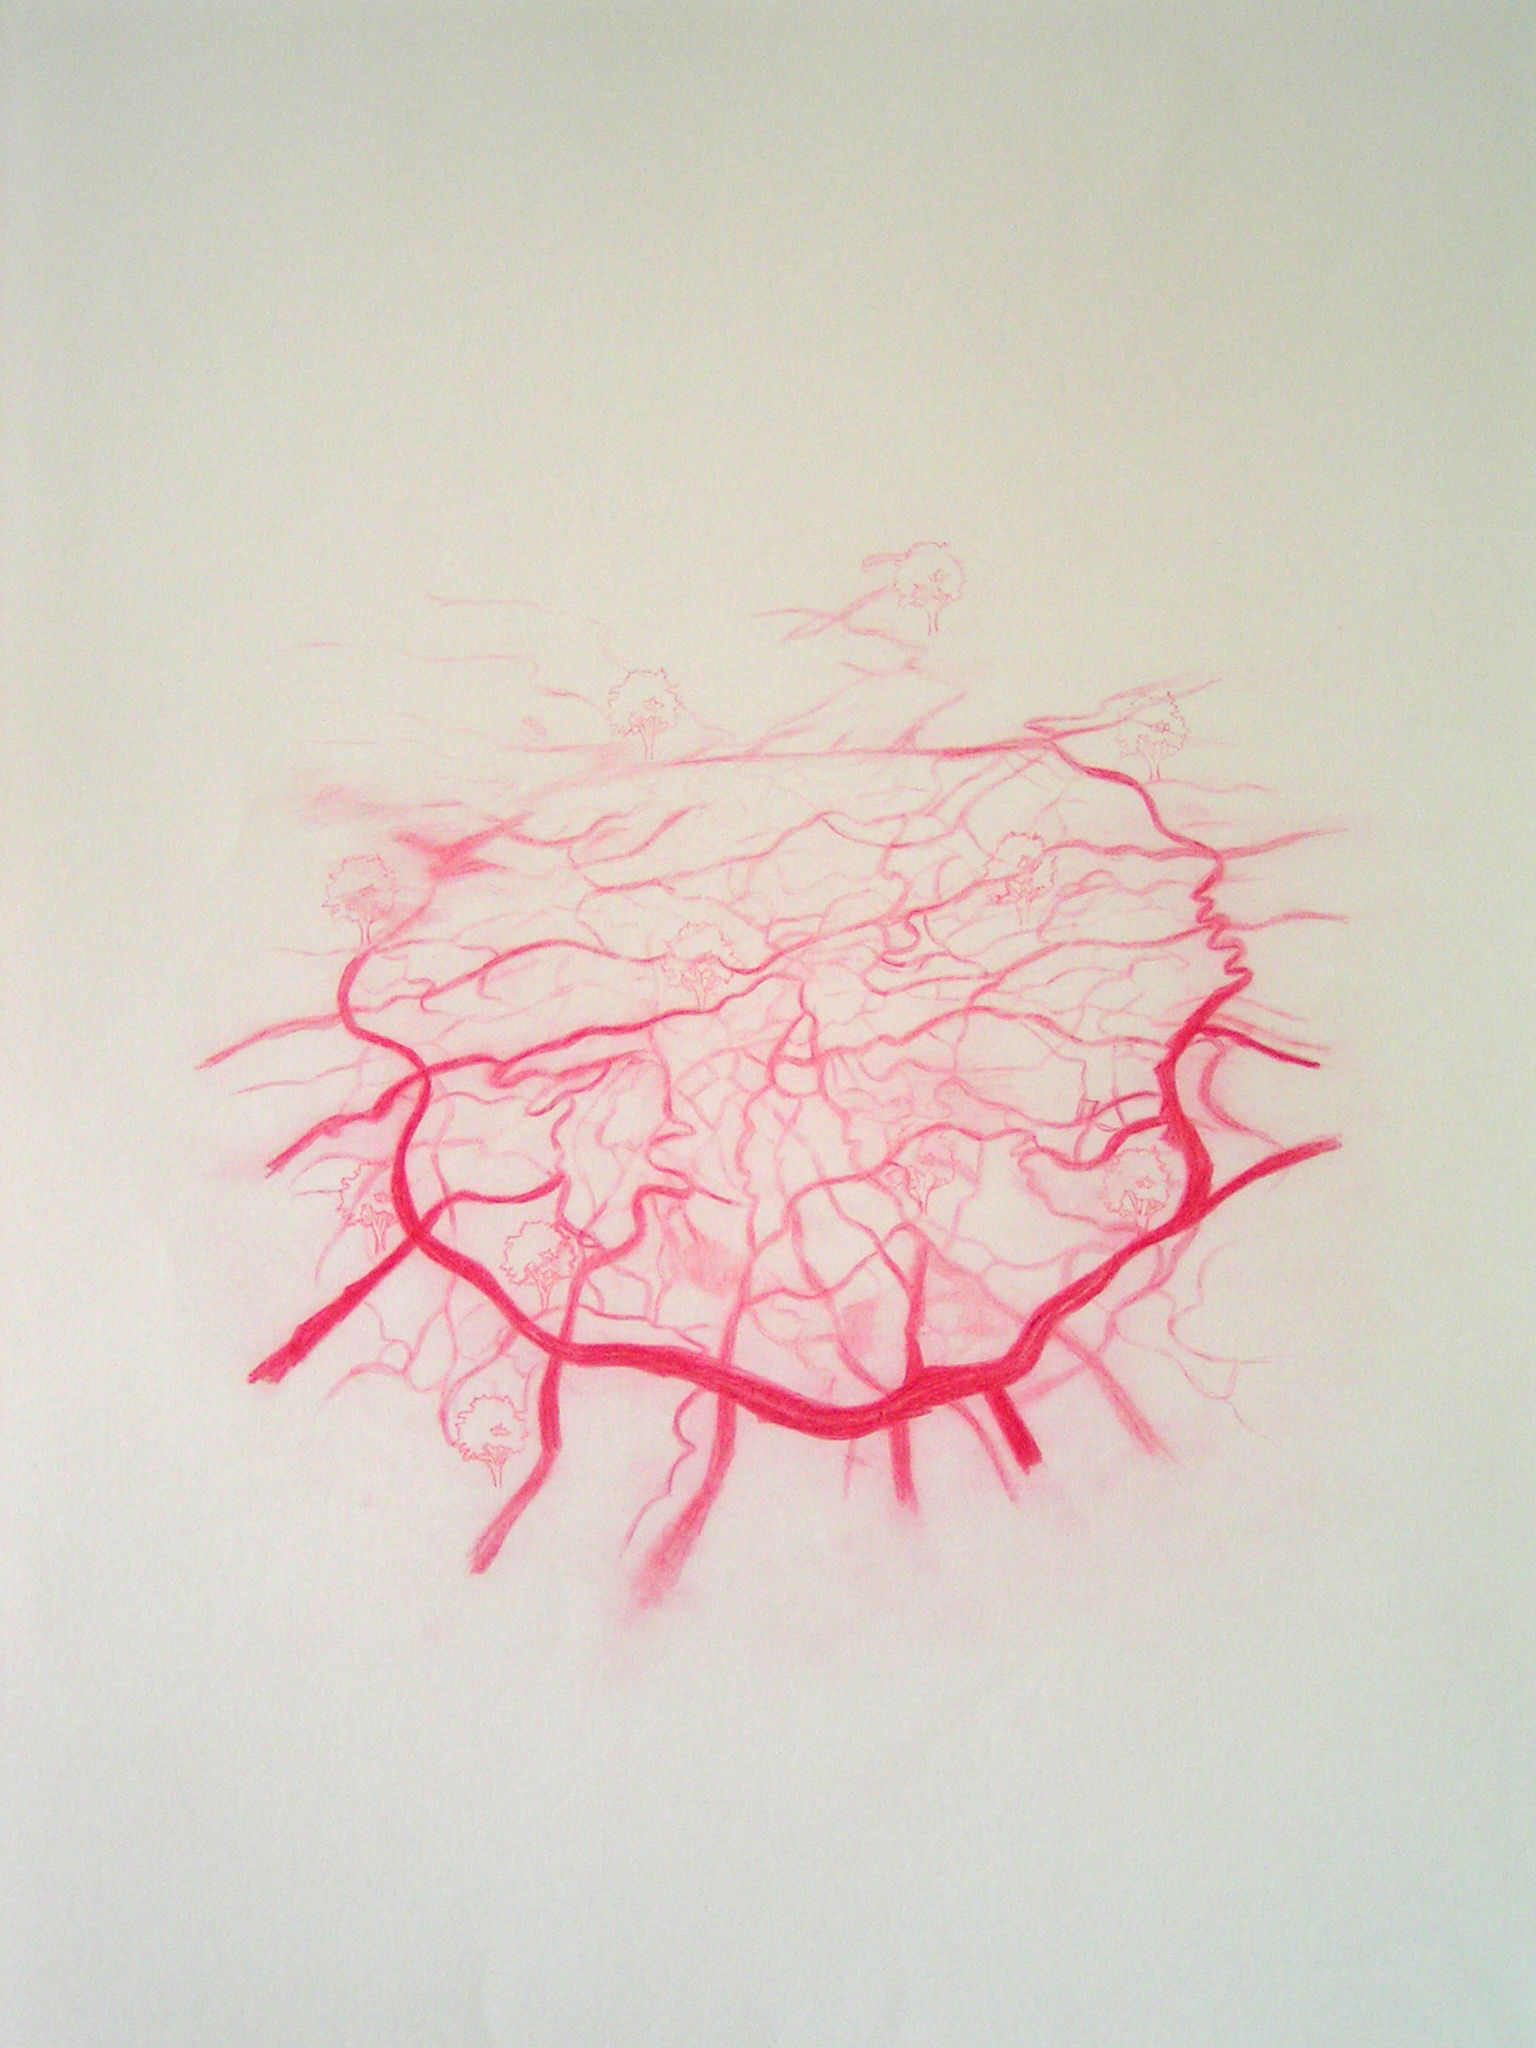 Emma J Williams 'Untitled Red Drawing No.2' pencil on paper